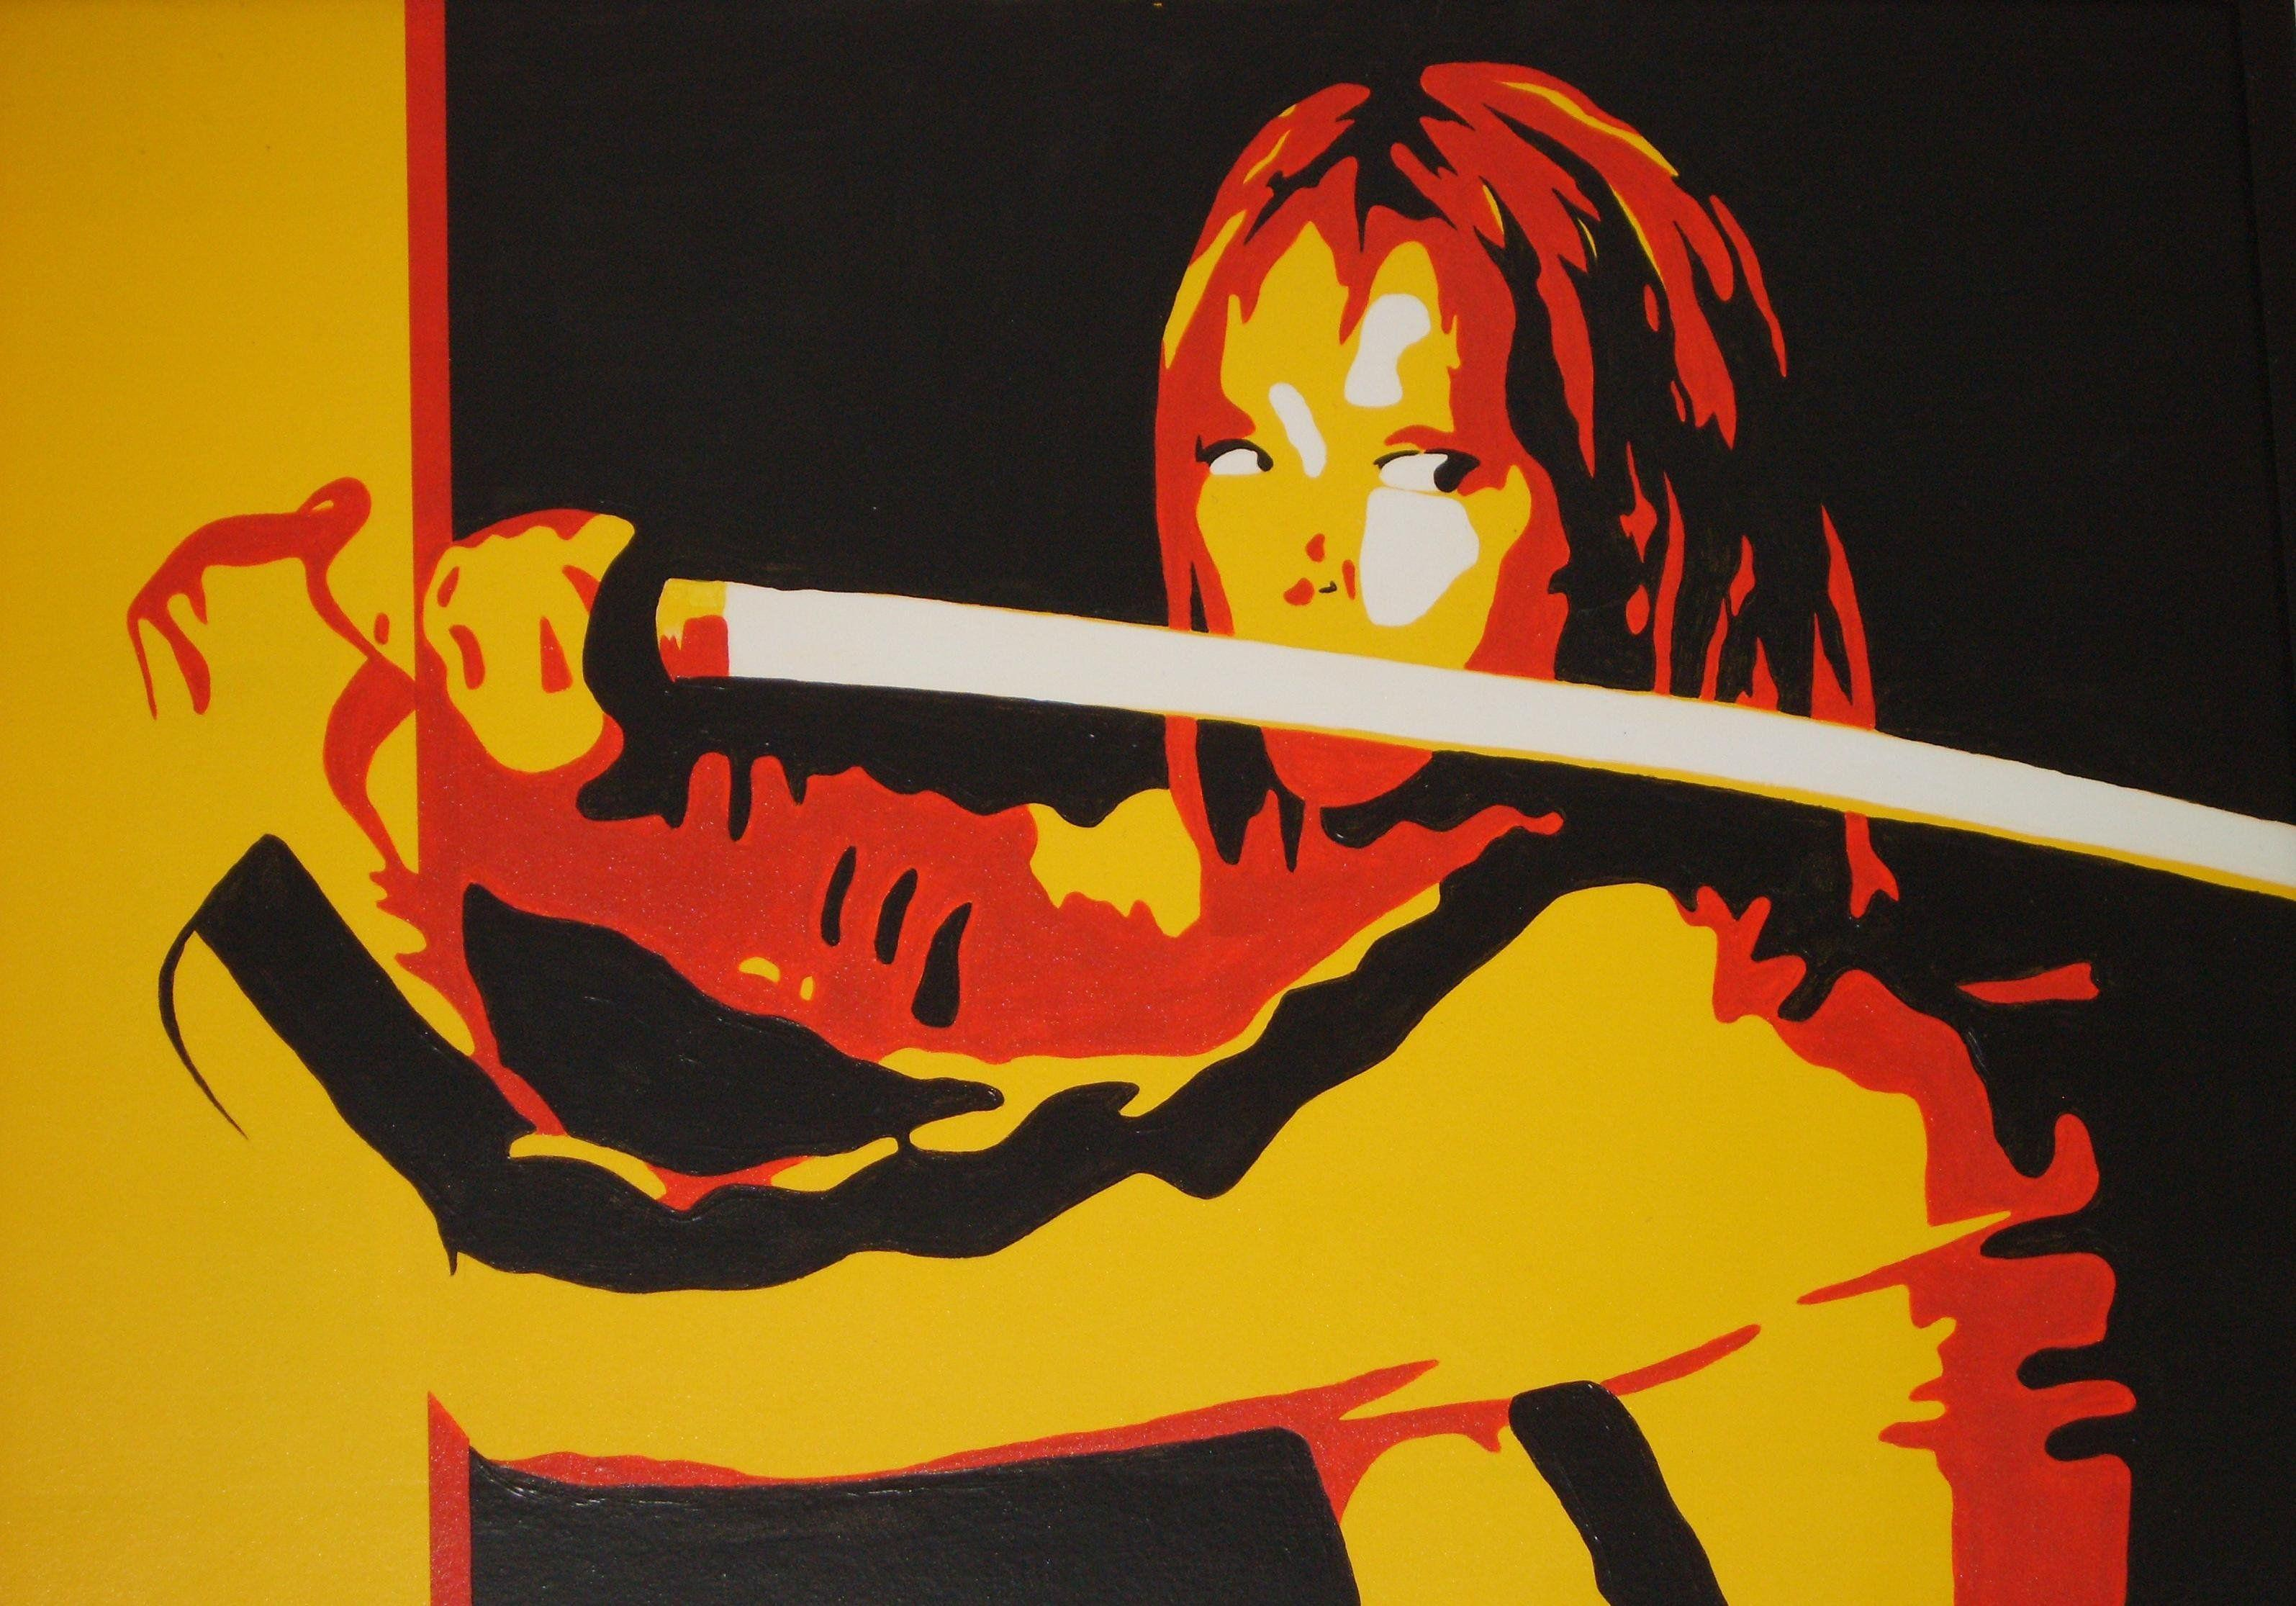 download movie killbill wallpaper - photo #32